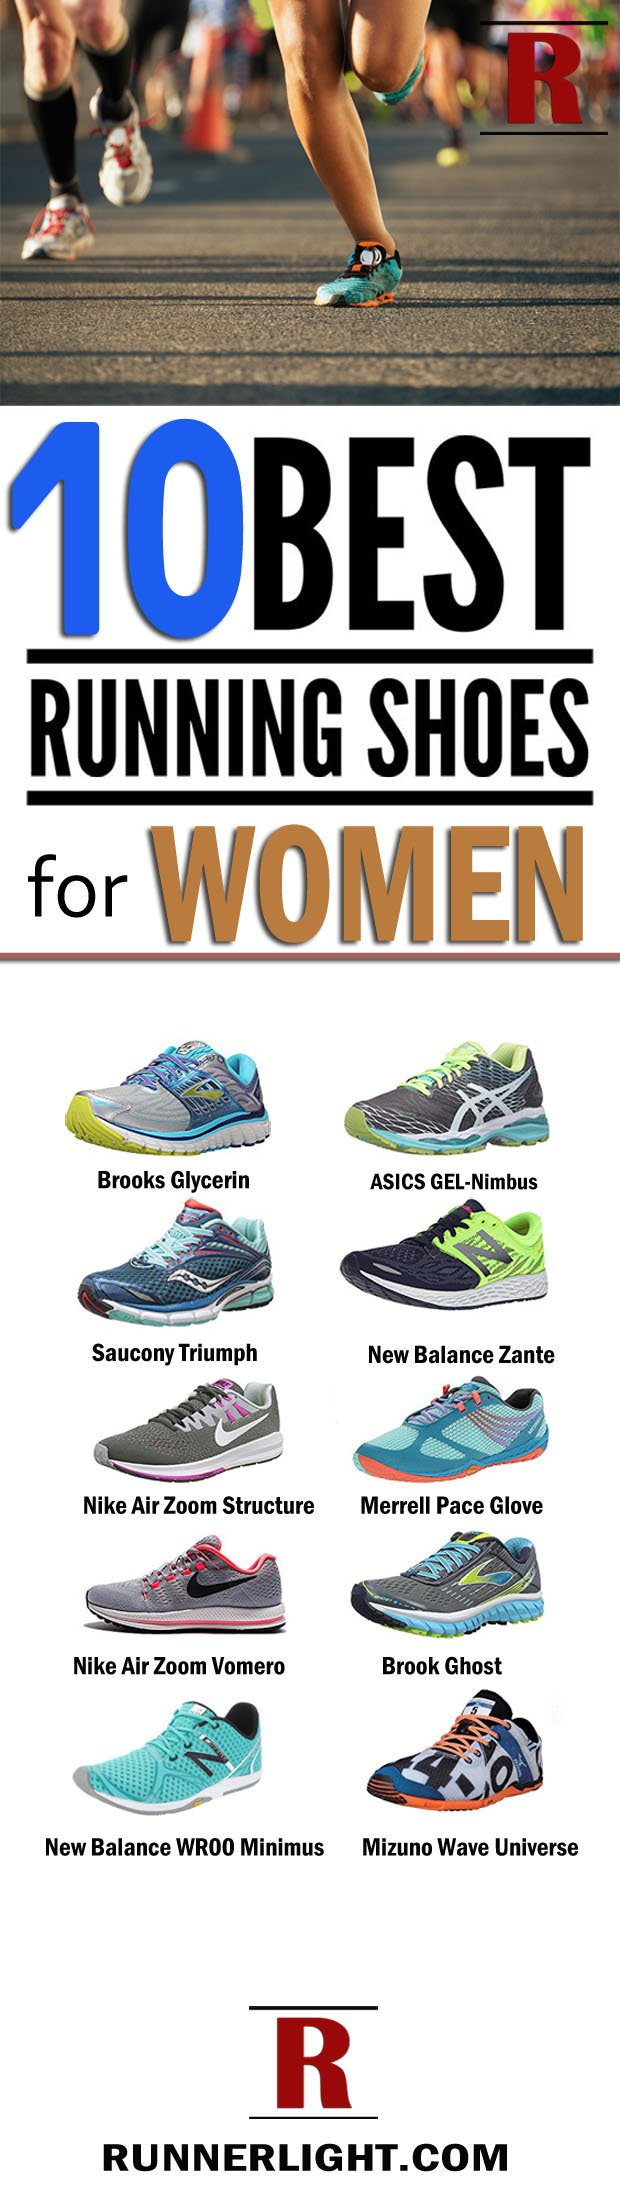 10 Best running shoes for women